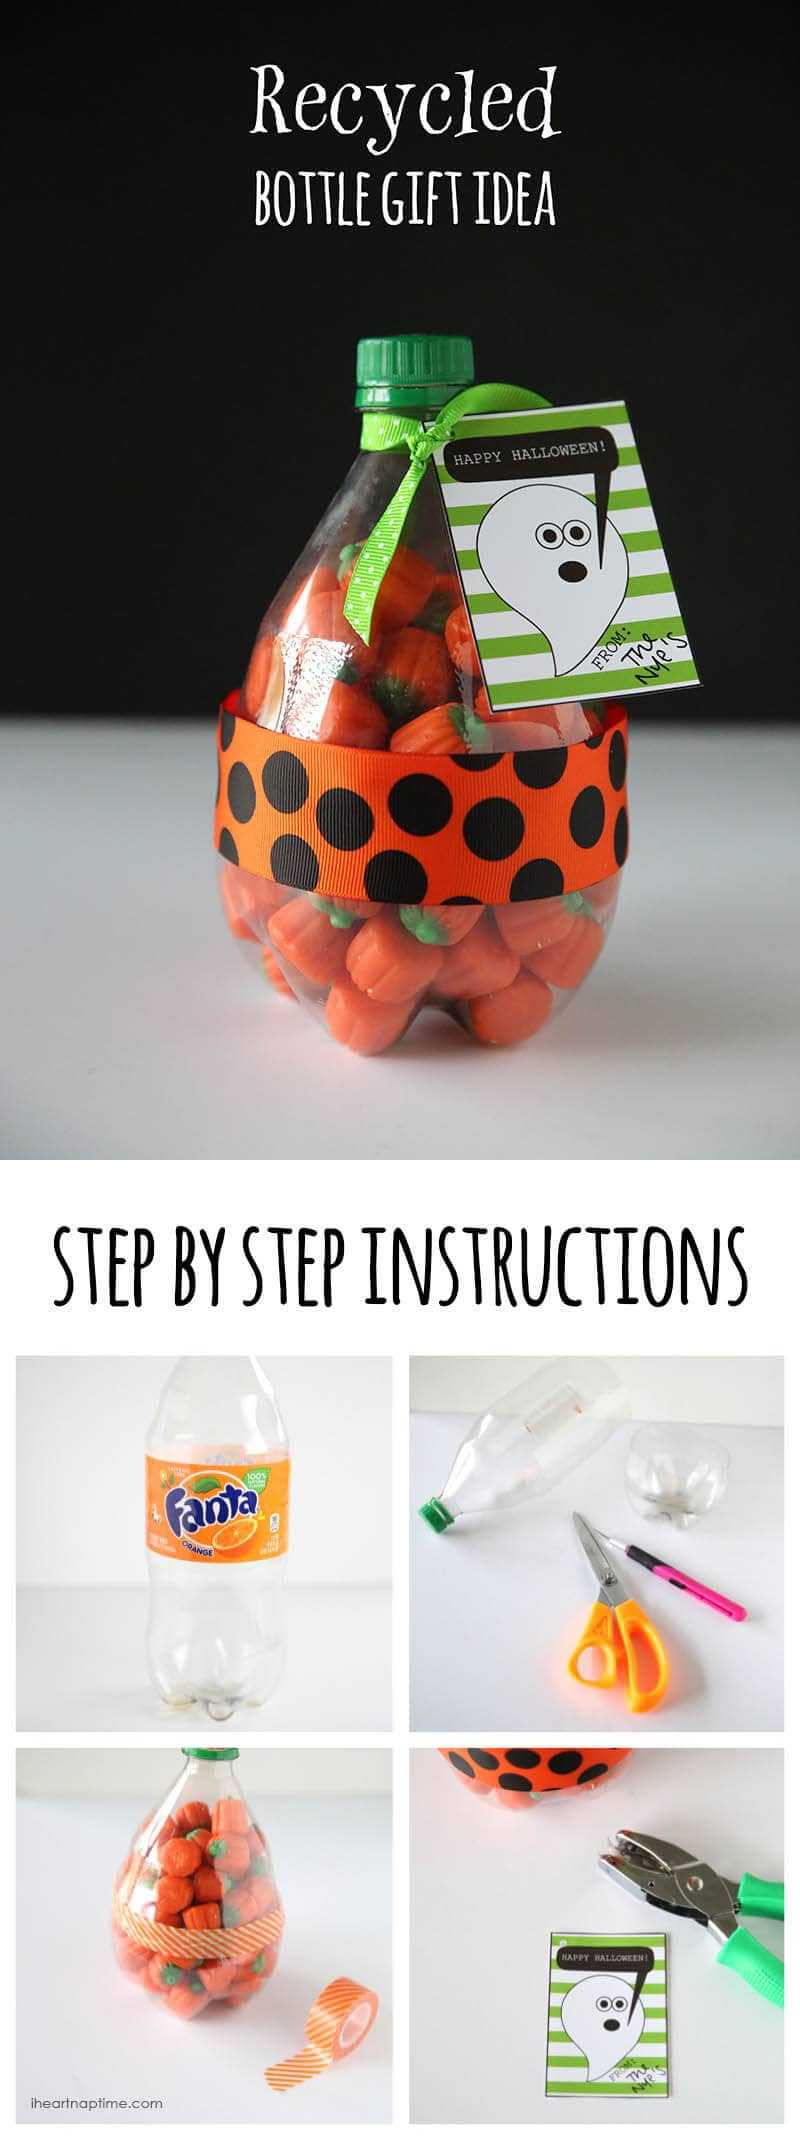 recycled bottle gift idea #DIY #crafts